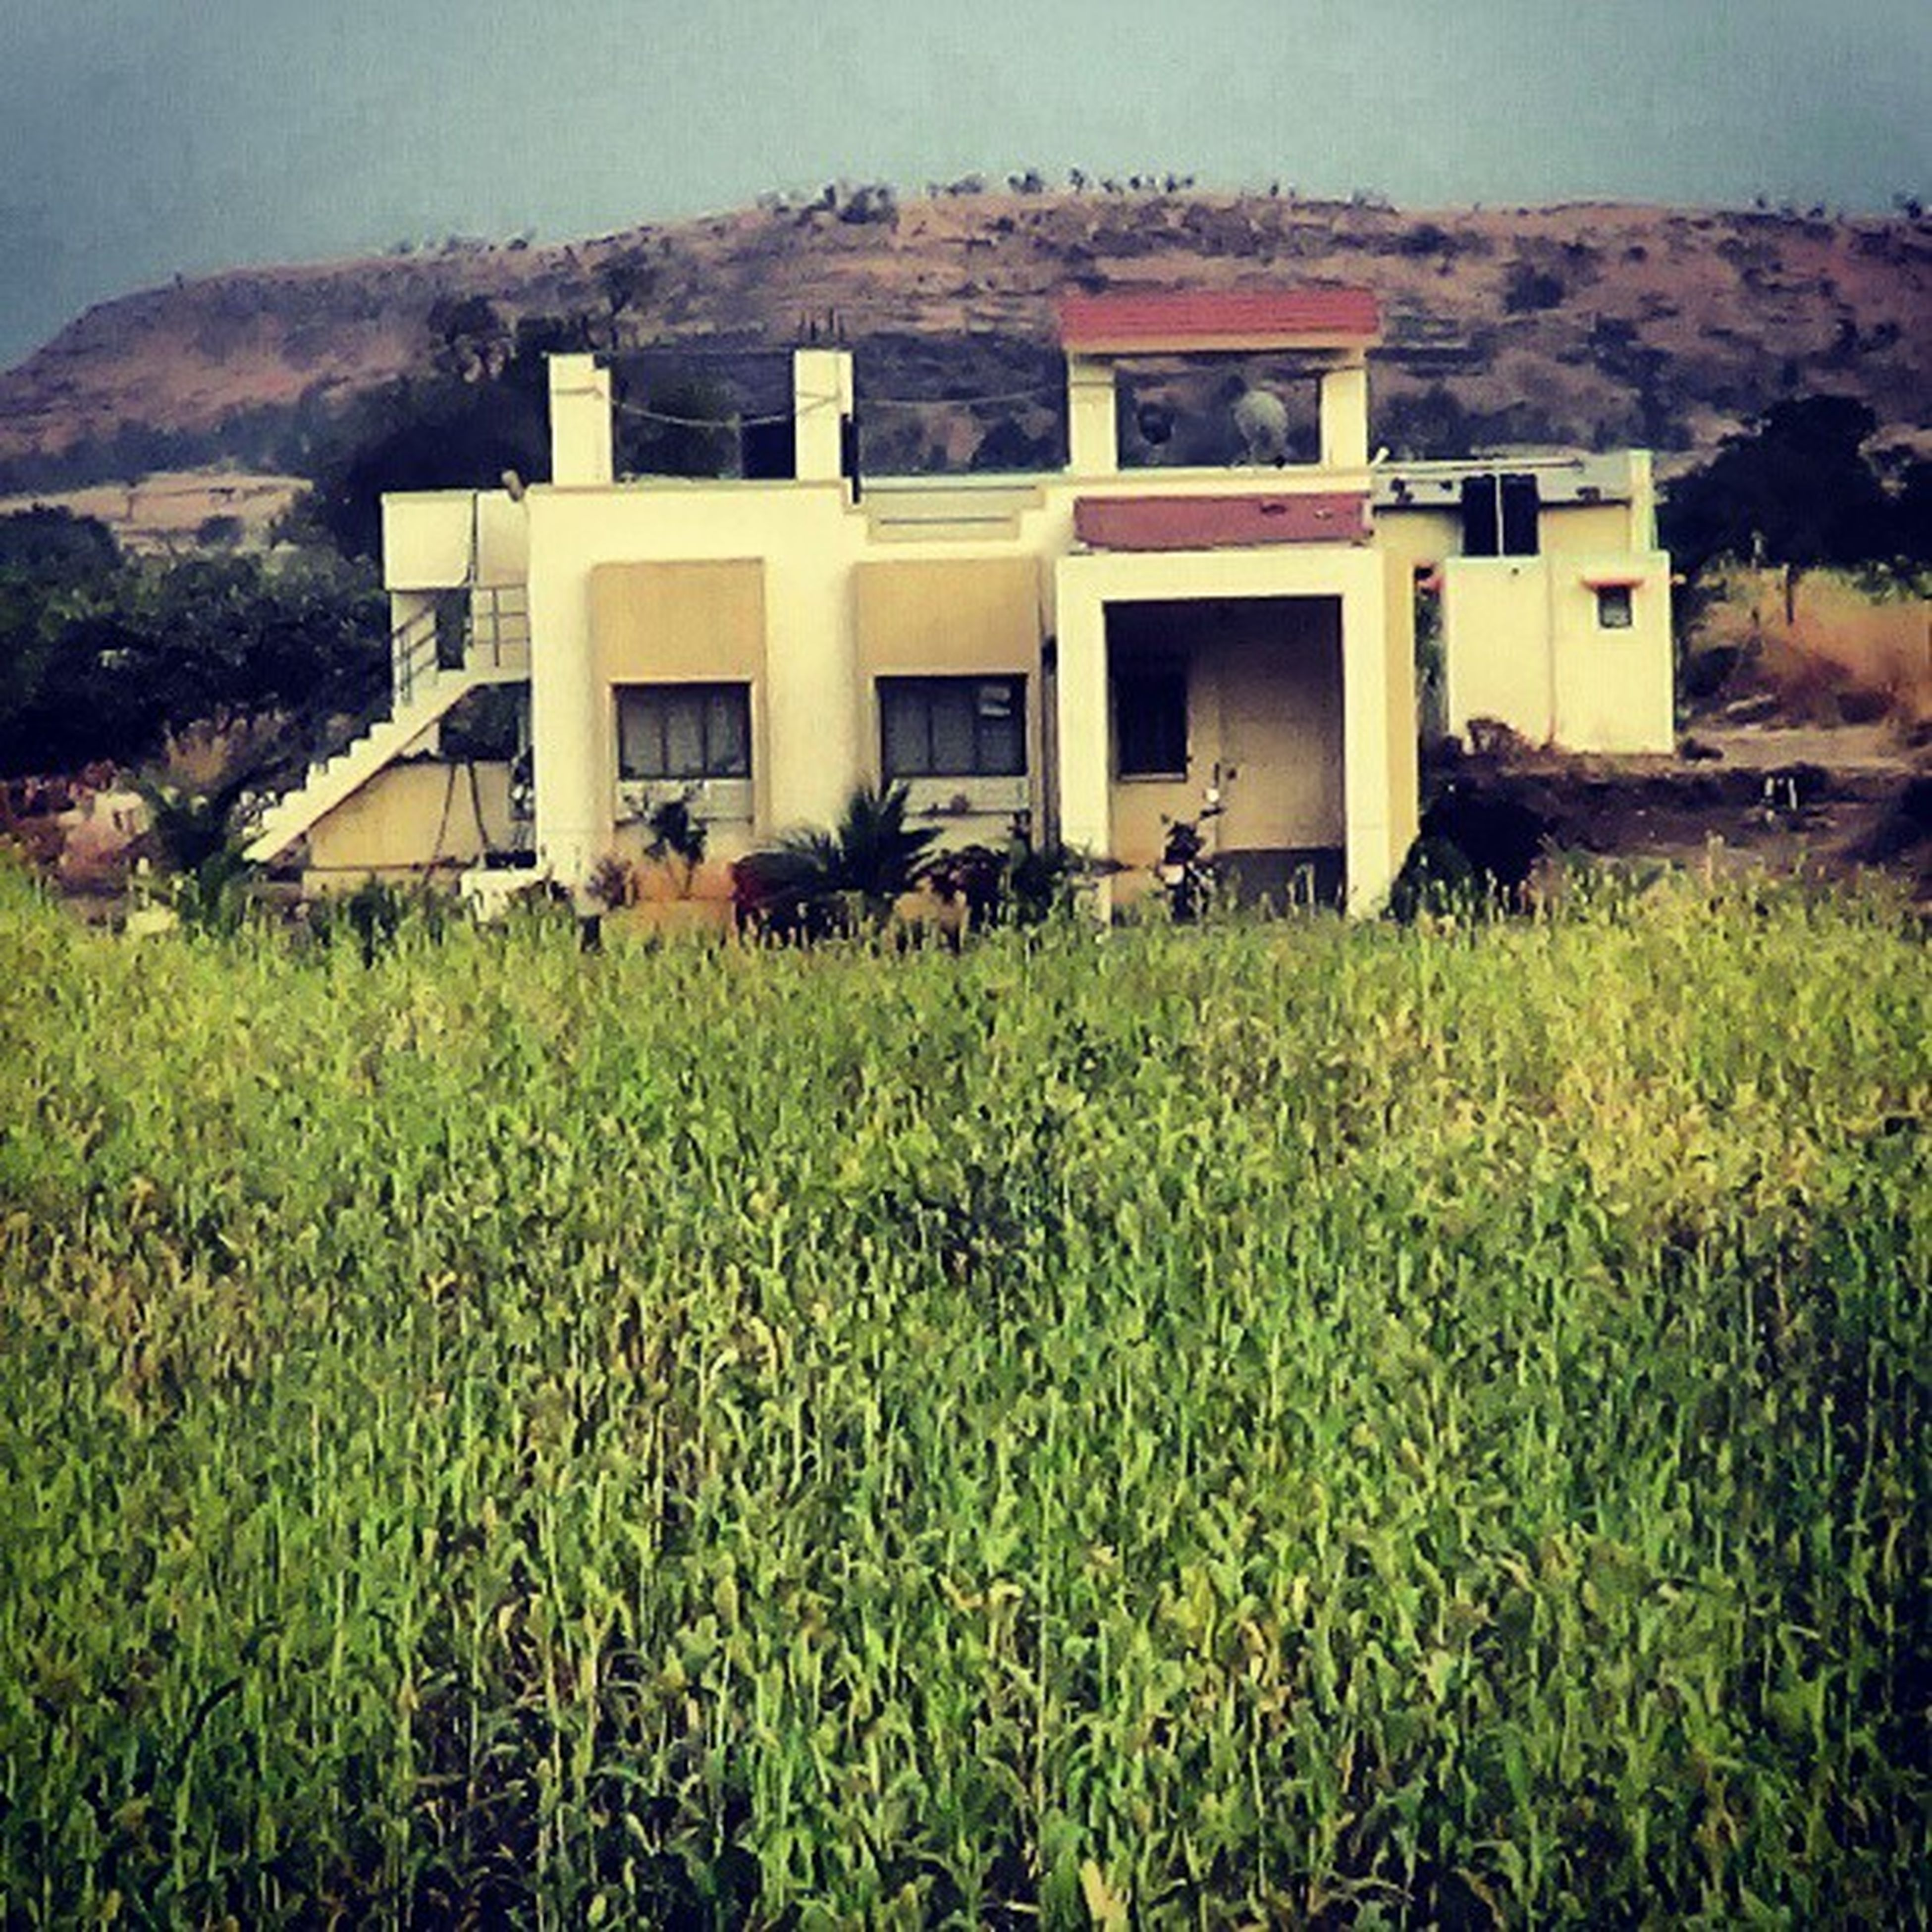 grass, building exterior, architecture, built structure, field, house, grassy, rural scene, plant, landscape, agriculture, growth, farm, nature, residential structure, day, outdoors, sky, abandoned, no people